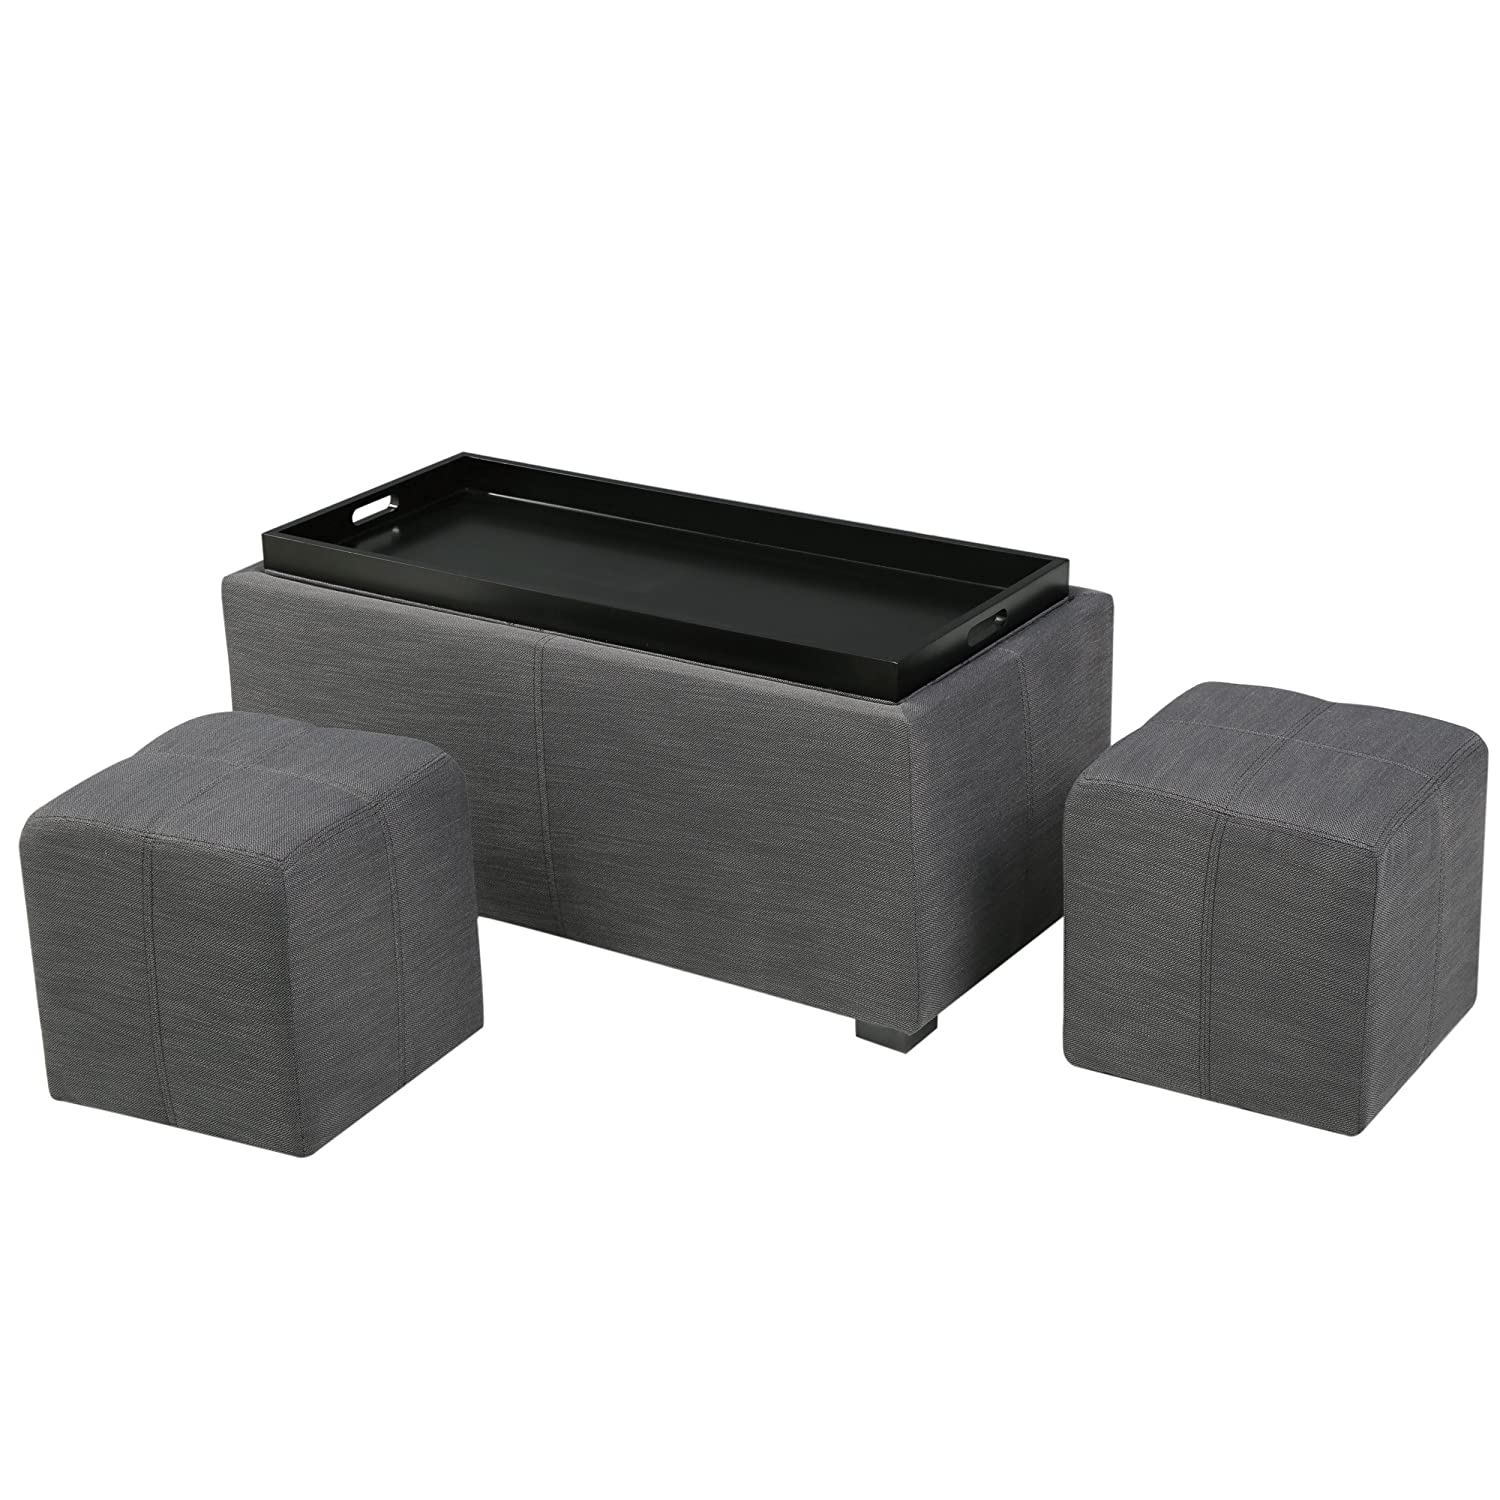 Awesome Christopher Knight Home Living August Grey 3 Piece Fabric Tray Top Nested Storage Ottoman Bench Gray Alphanode Cool Chair Designs And Ideas Alphanodeonline